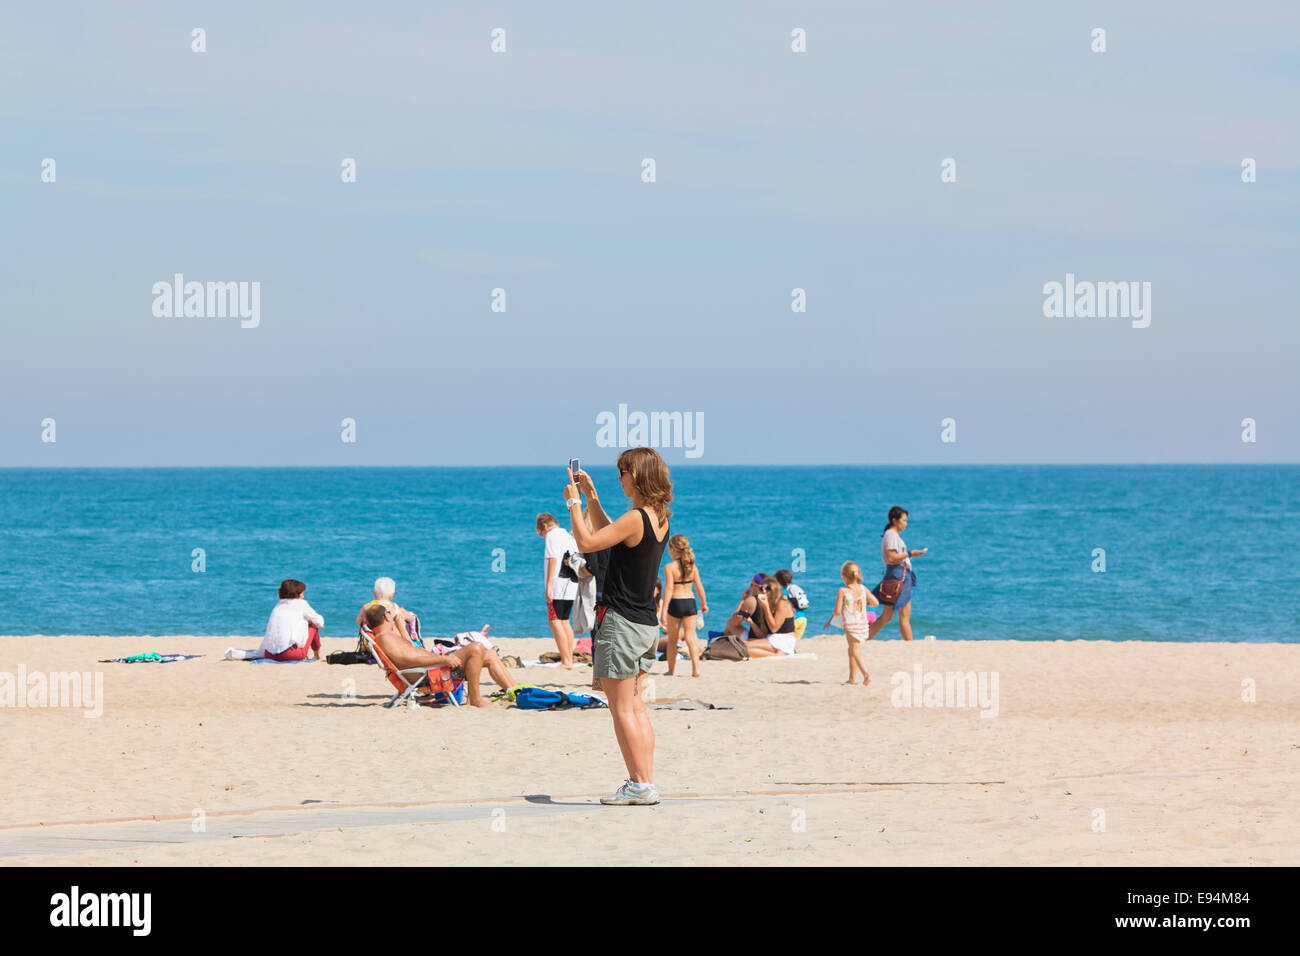 Woman on Beach with Mobile Phone, taking Pictures - Stock Image